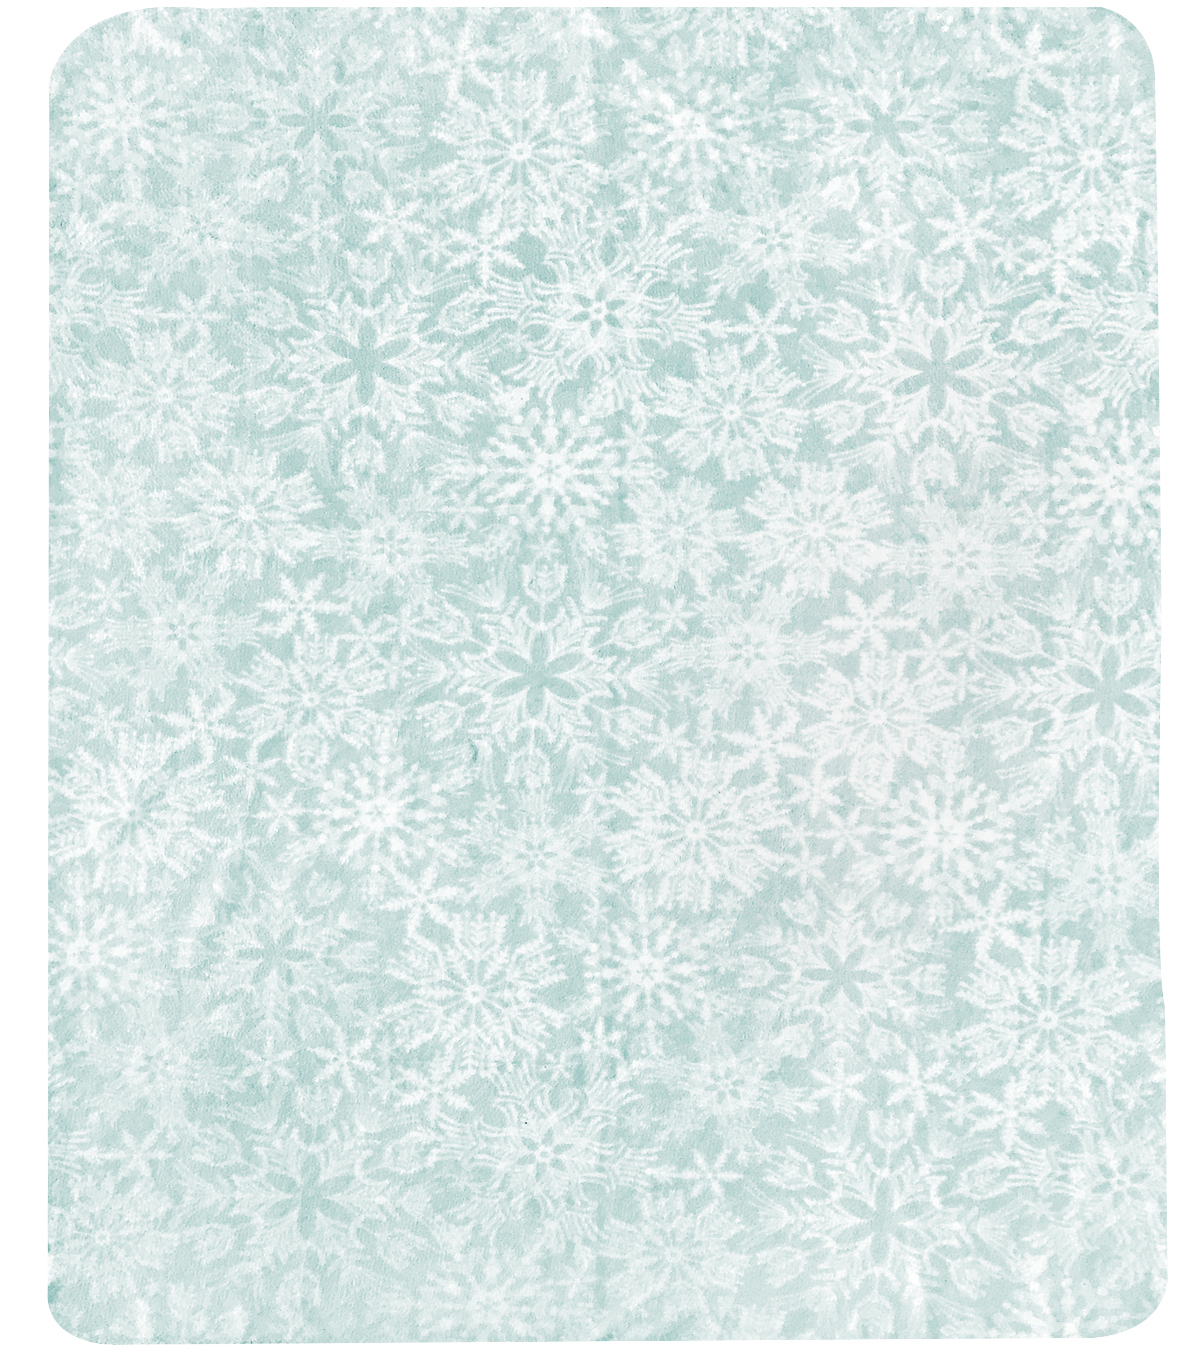 Christmas No Sew Fleece Throw 72\u0027\u0027-Snowflakes on Ice Blue